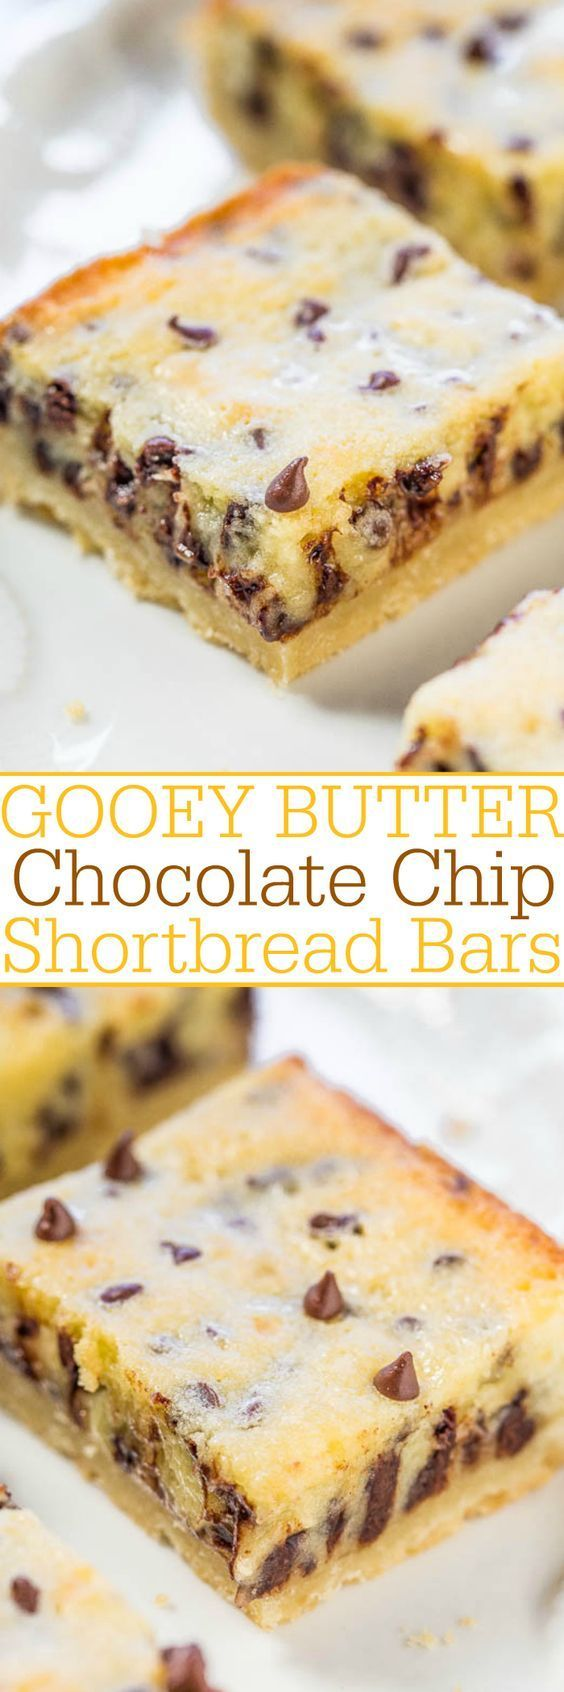 The best easy desserts bars recipes favorite new plus classic the best easy desserts bars recipes favorite new plus classic simple bar cookies and quick big batch party treats bars for a crowd forumfinder Image collections